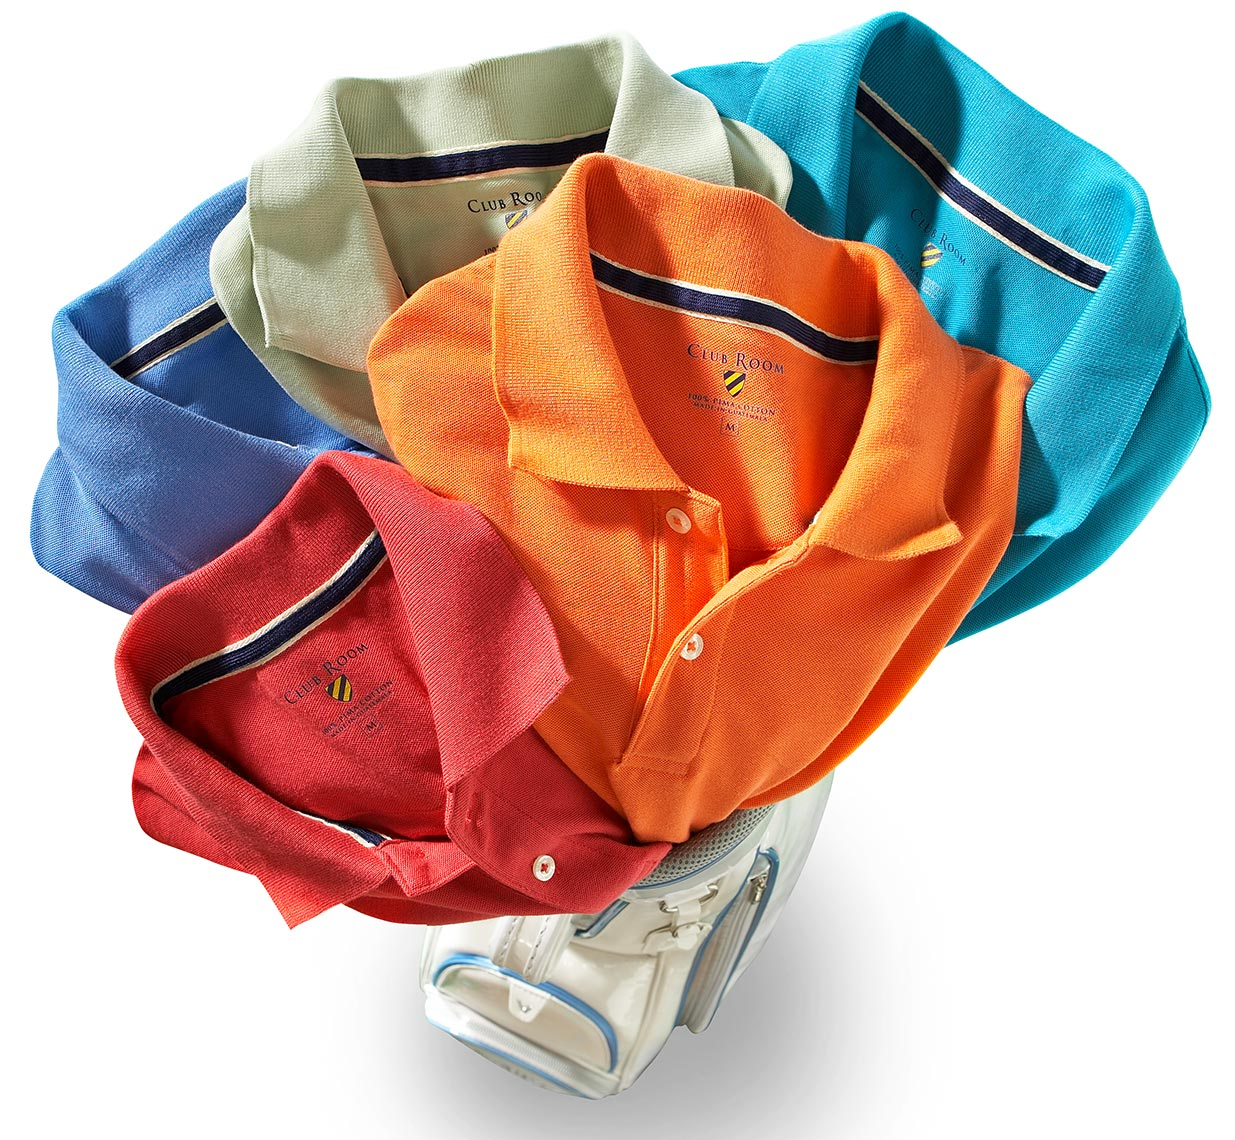 Golf_Shirts_in_golf_bag